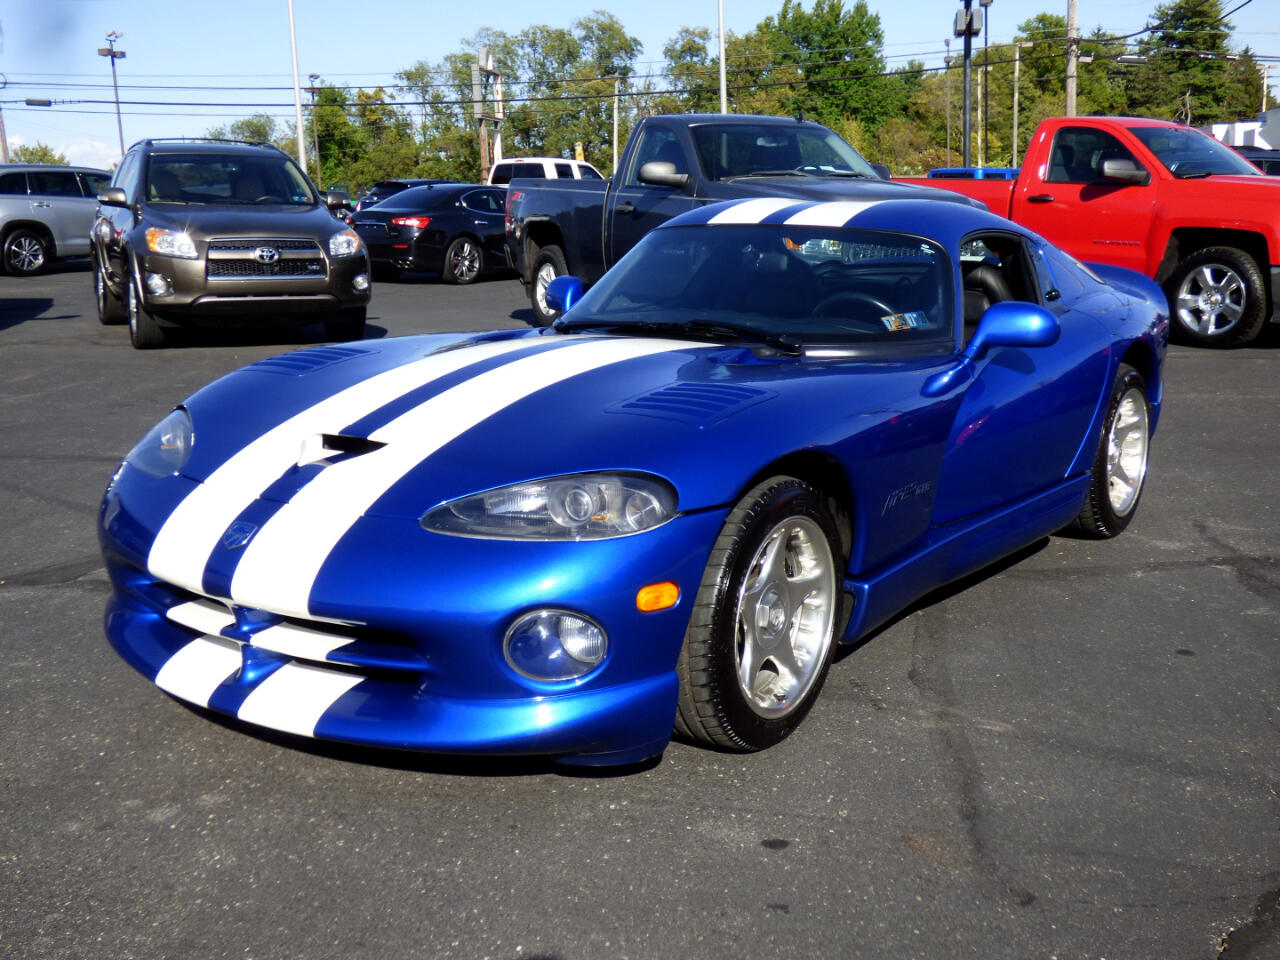 1996 Dodge Viper 2dr GTS Coupe